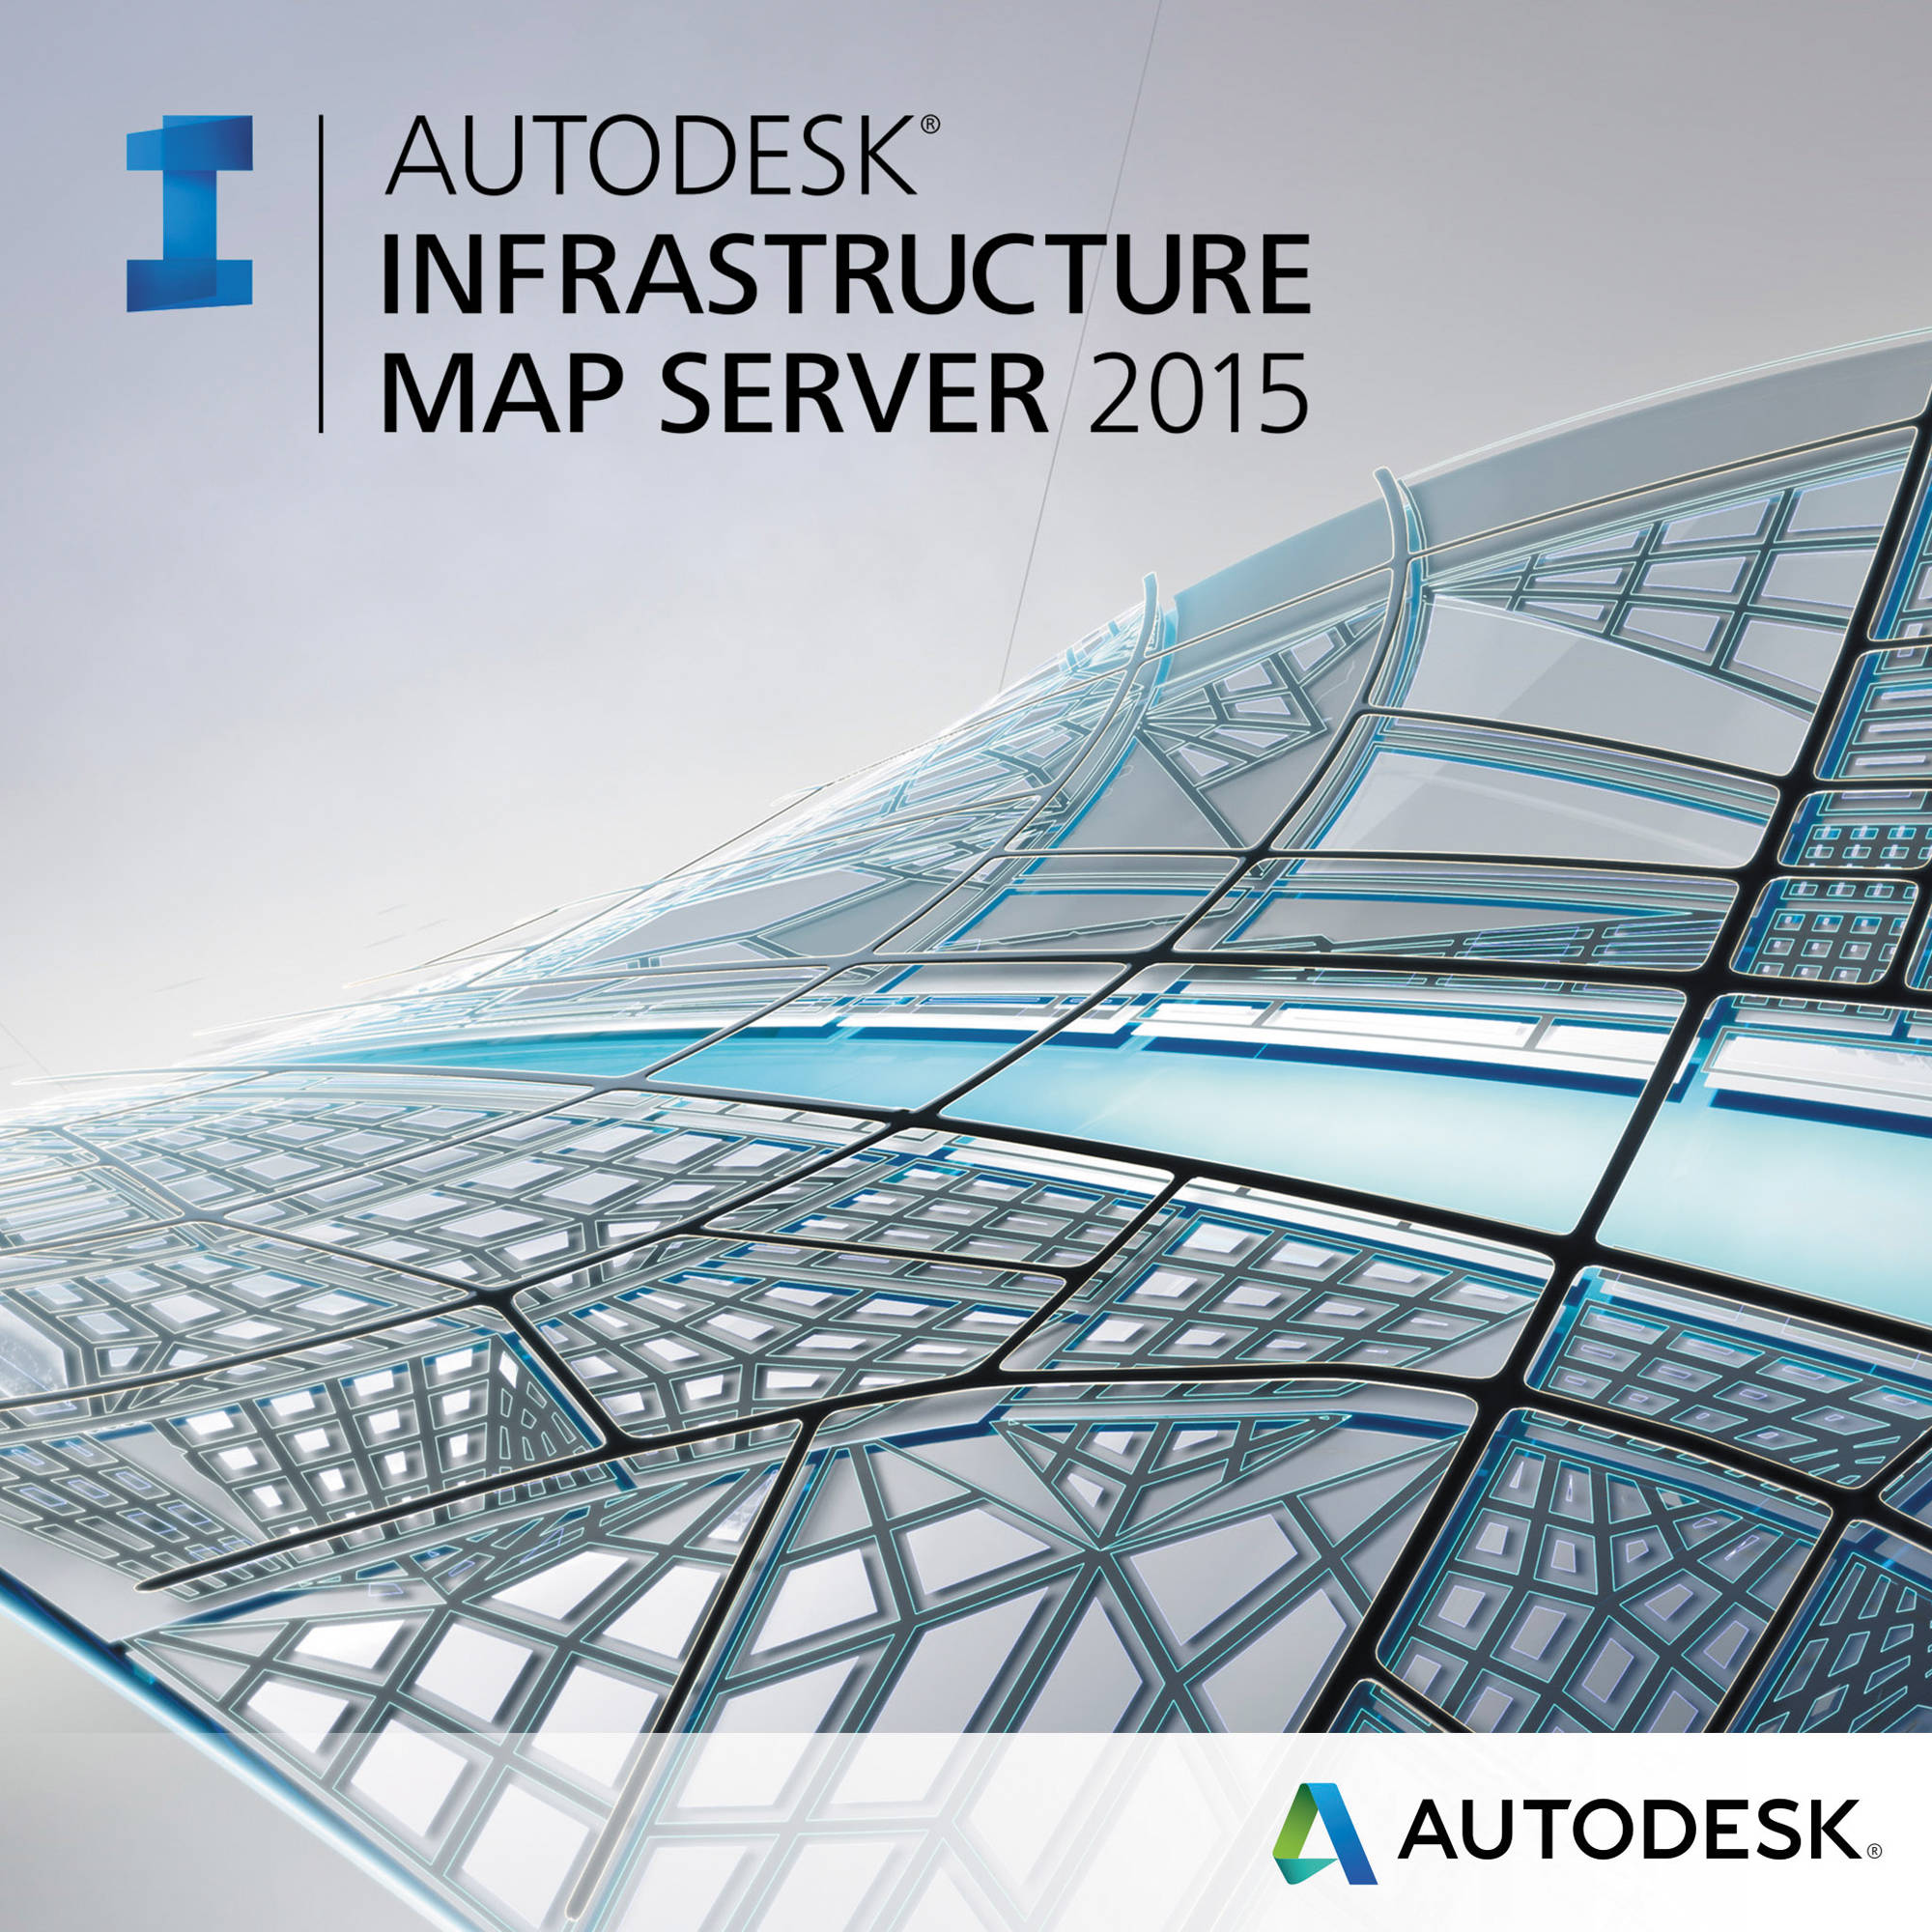 autodesk questions and answers autodesk 3d